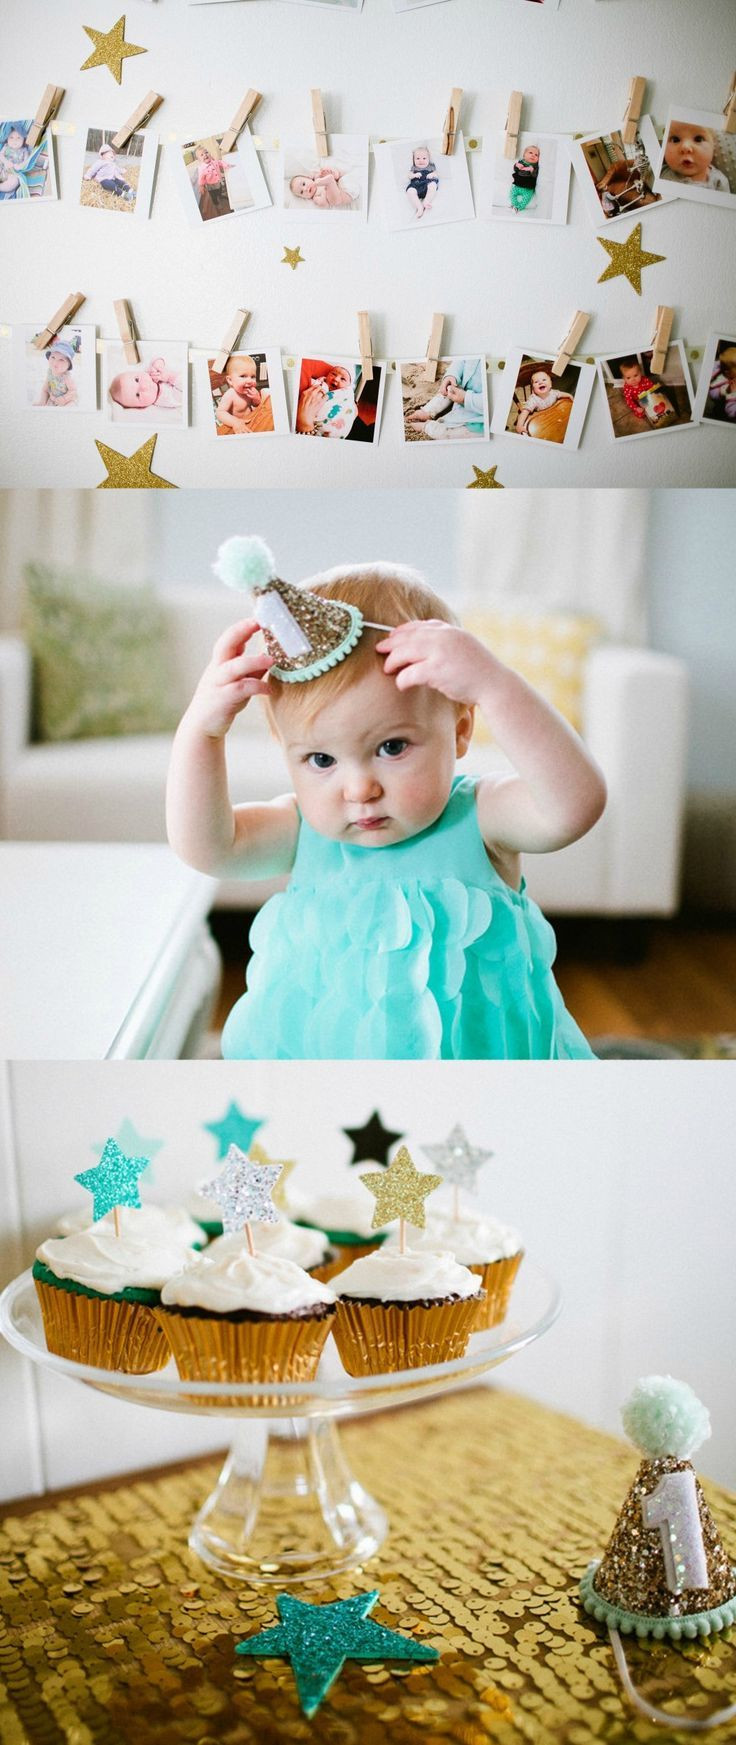 Best ideas about Baby First Birthday Party . Save or Pin 1000 images about First Birthday Party Ideas on Pinterest Now.